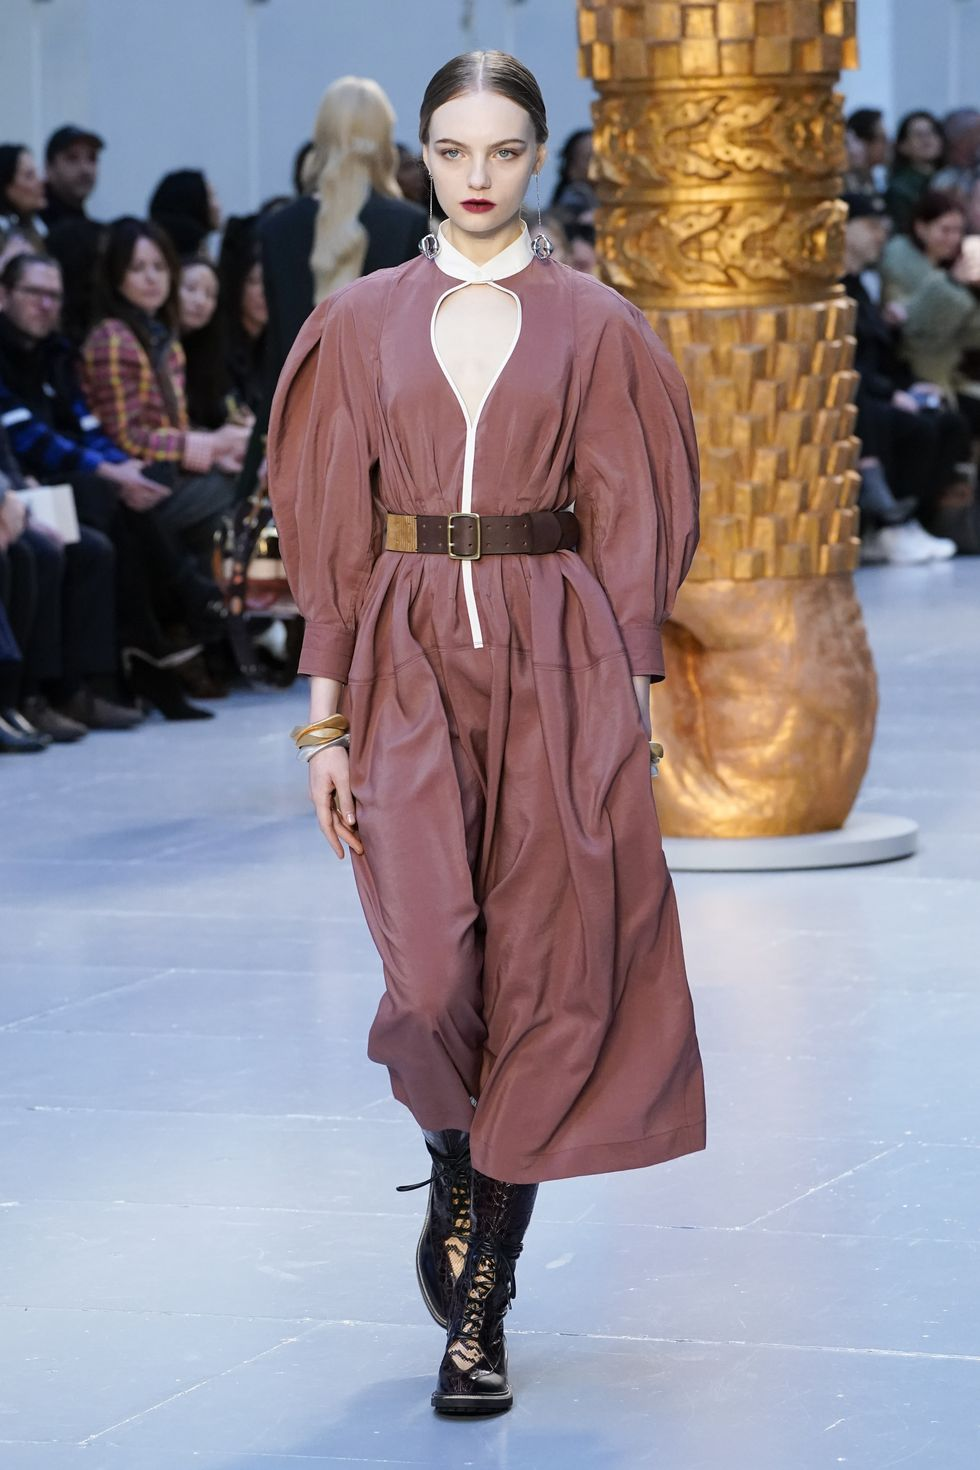 Be Amazed By Paris Fashion Week 2020's Runway Looks paris fashion week 2020 Be Amazed By Paris Fashion Week 2020's Runway Looks gettyimages 1209092031